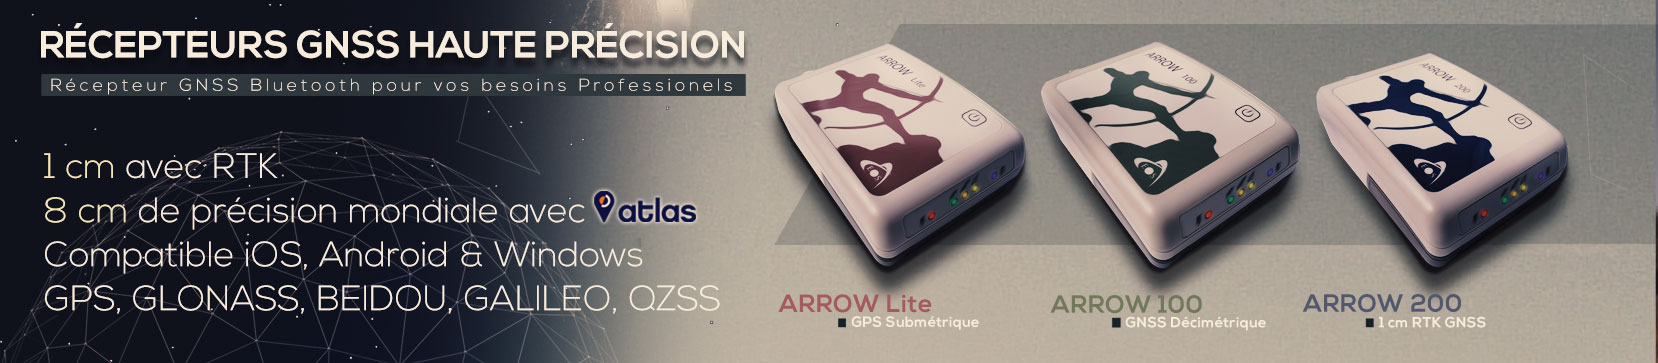 eos arrow series